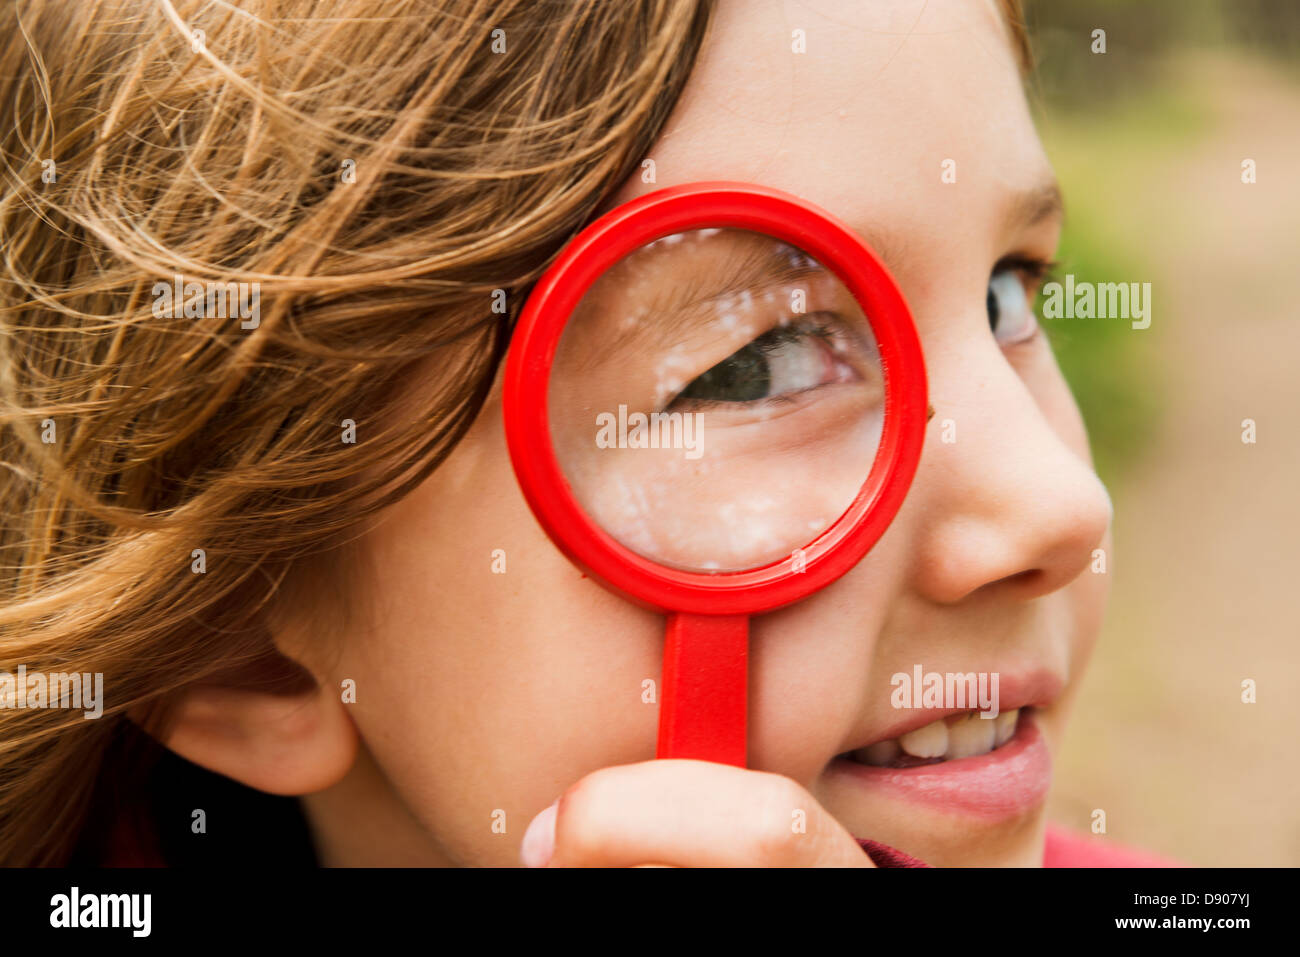 Portrait of Girl with magnifying glass Photo Stock